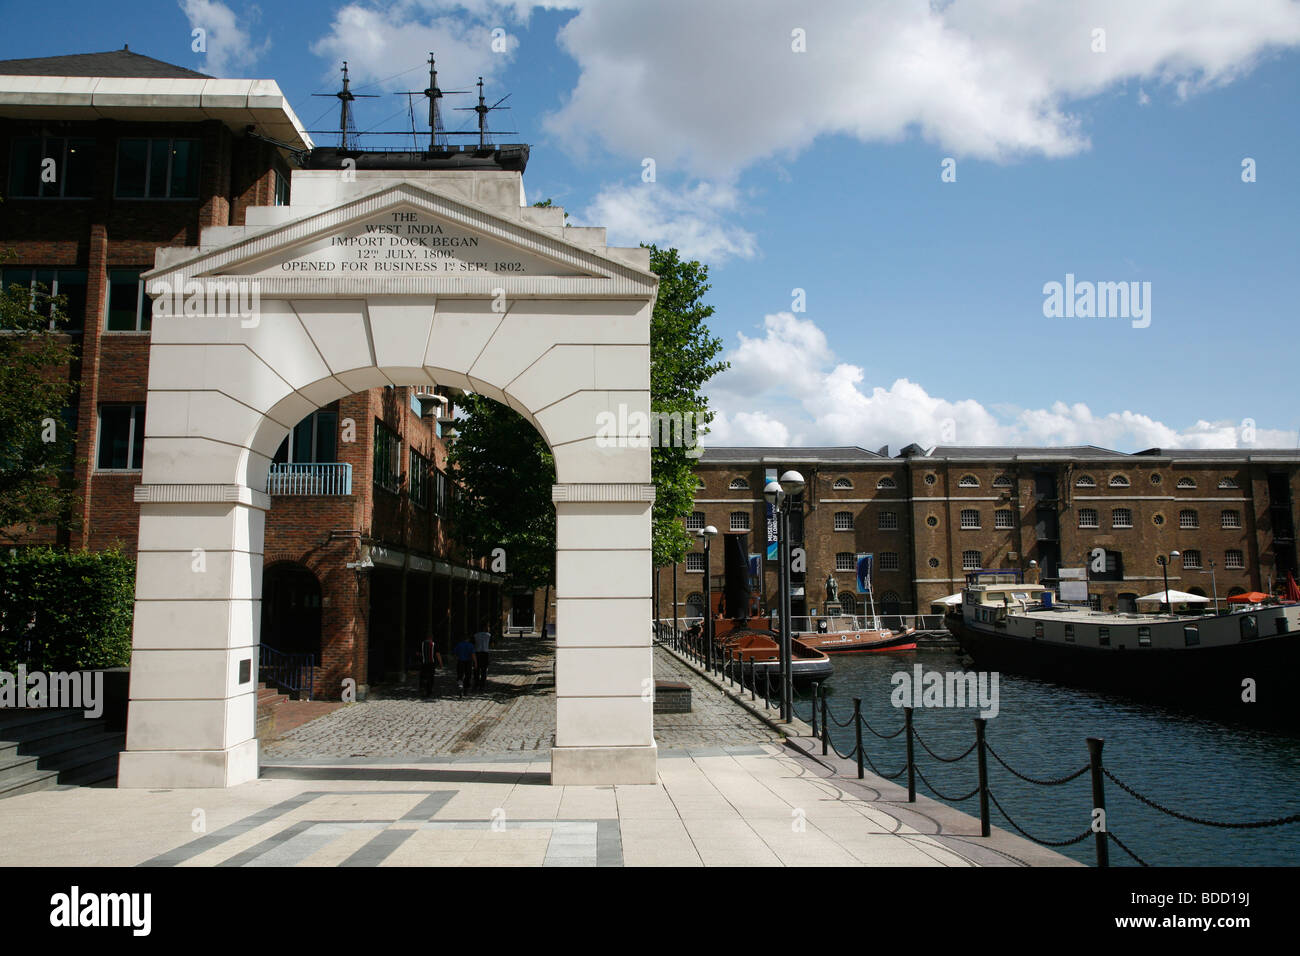 West India Dock Arch in front of the Museum of Docklands in West India Dock North, Canary Wharf, London, UK - Stock Image